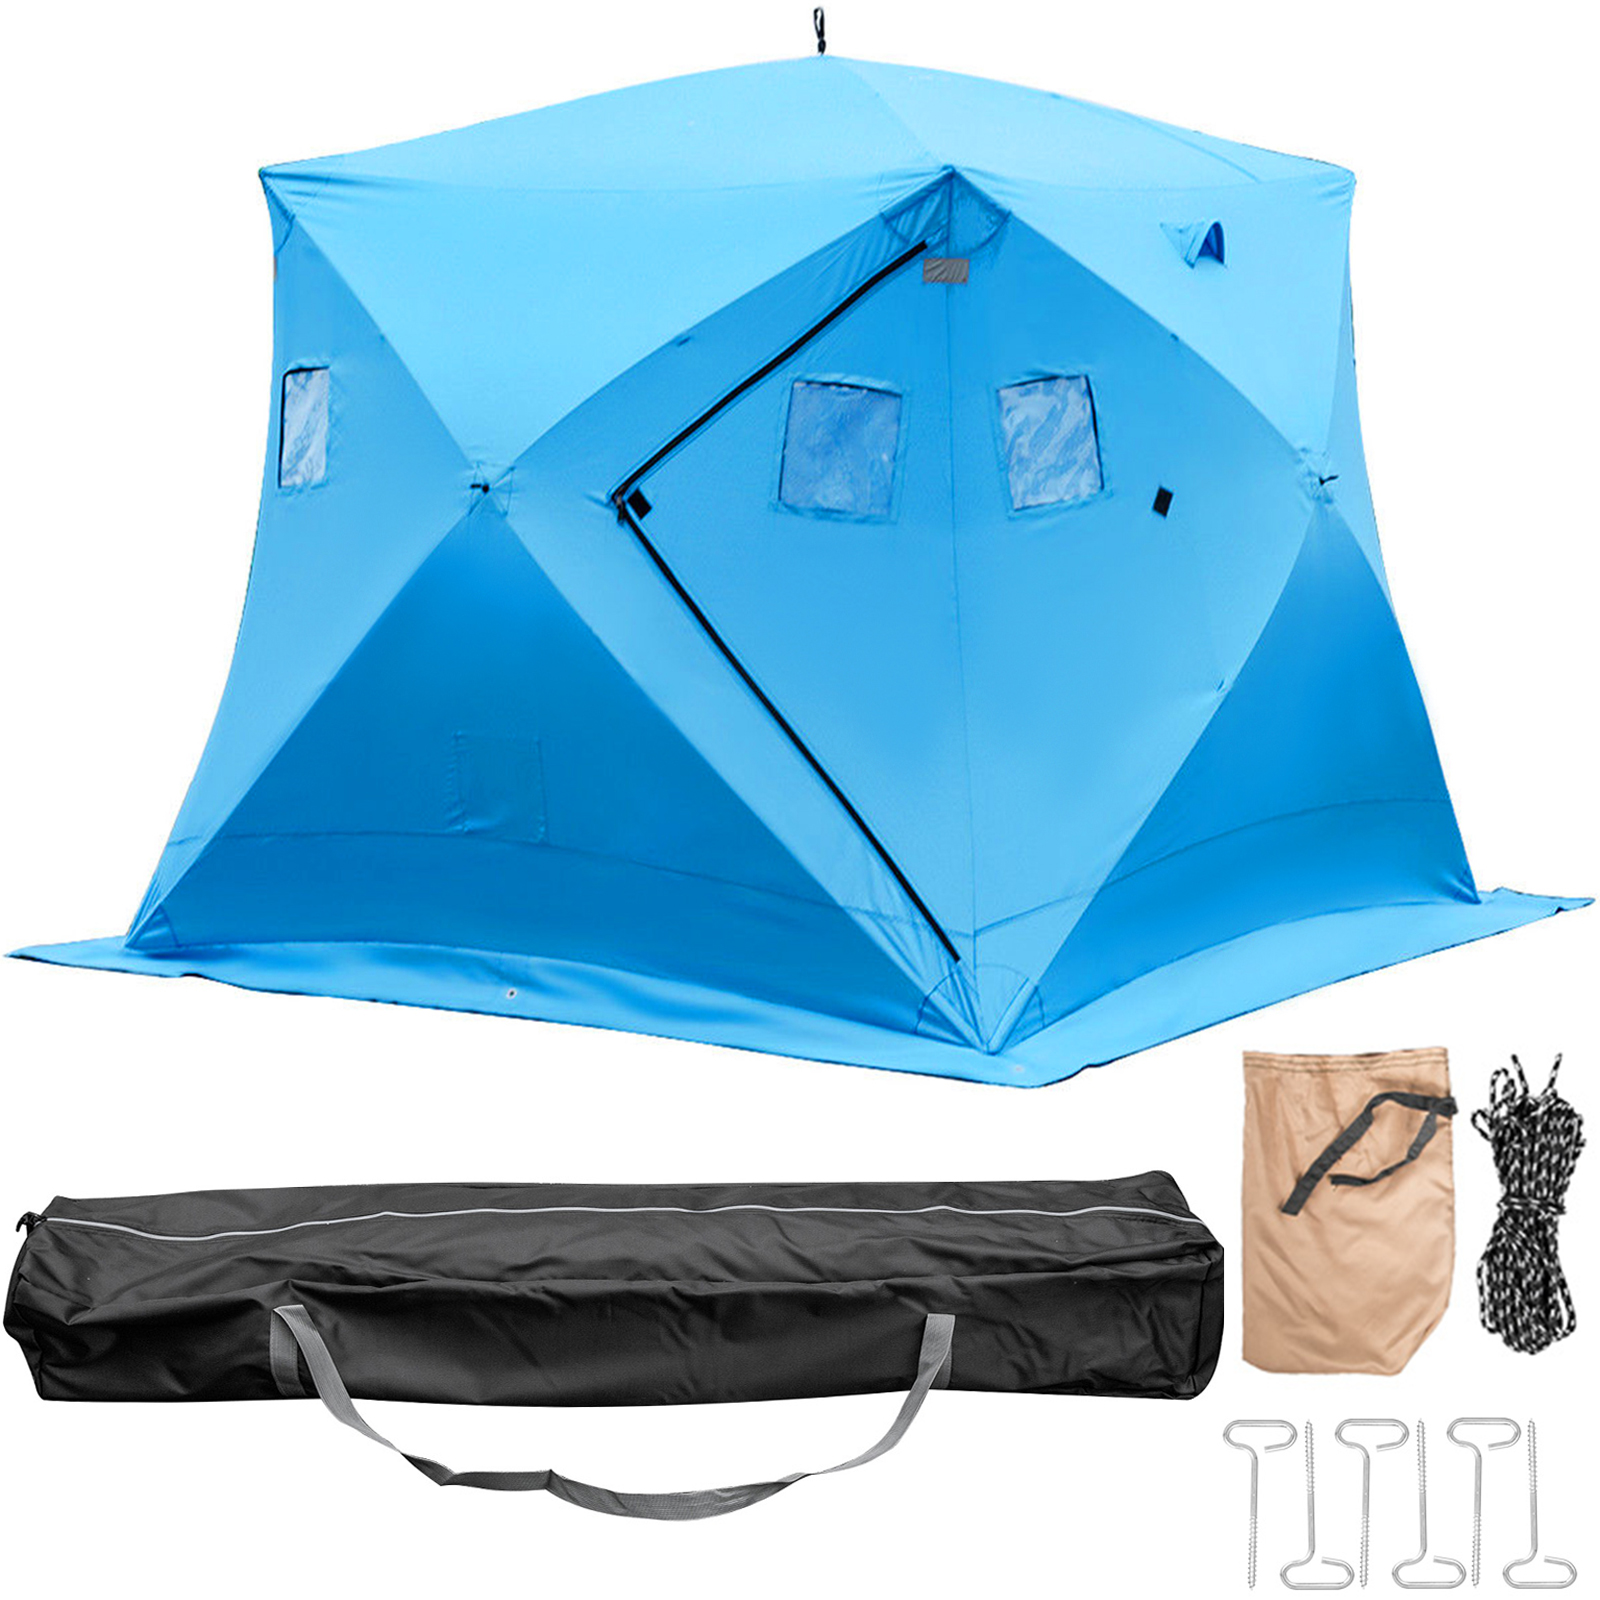 Ice Shelter Fishing Tent Shanty 2-Person Pop-up Stability Waterproof w//Bag Global Products Unlimited